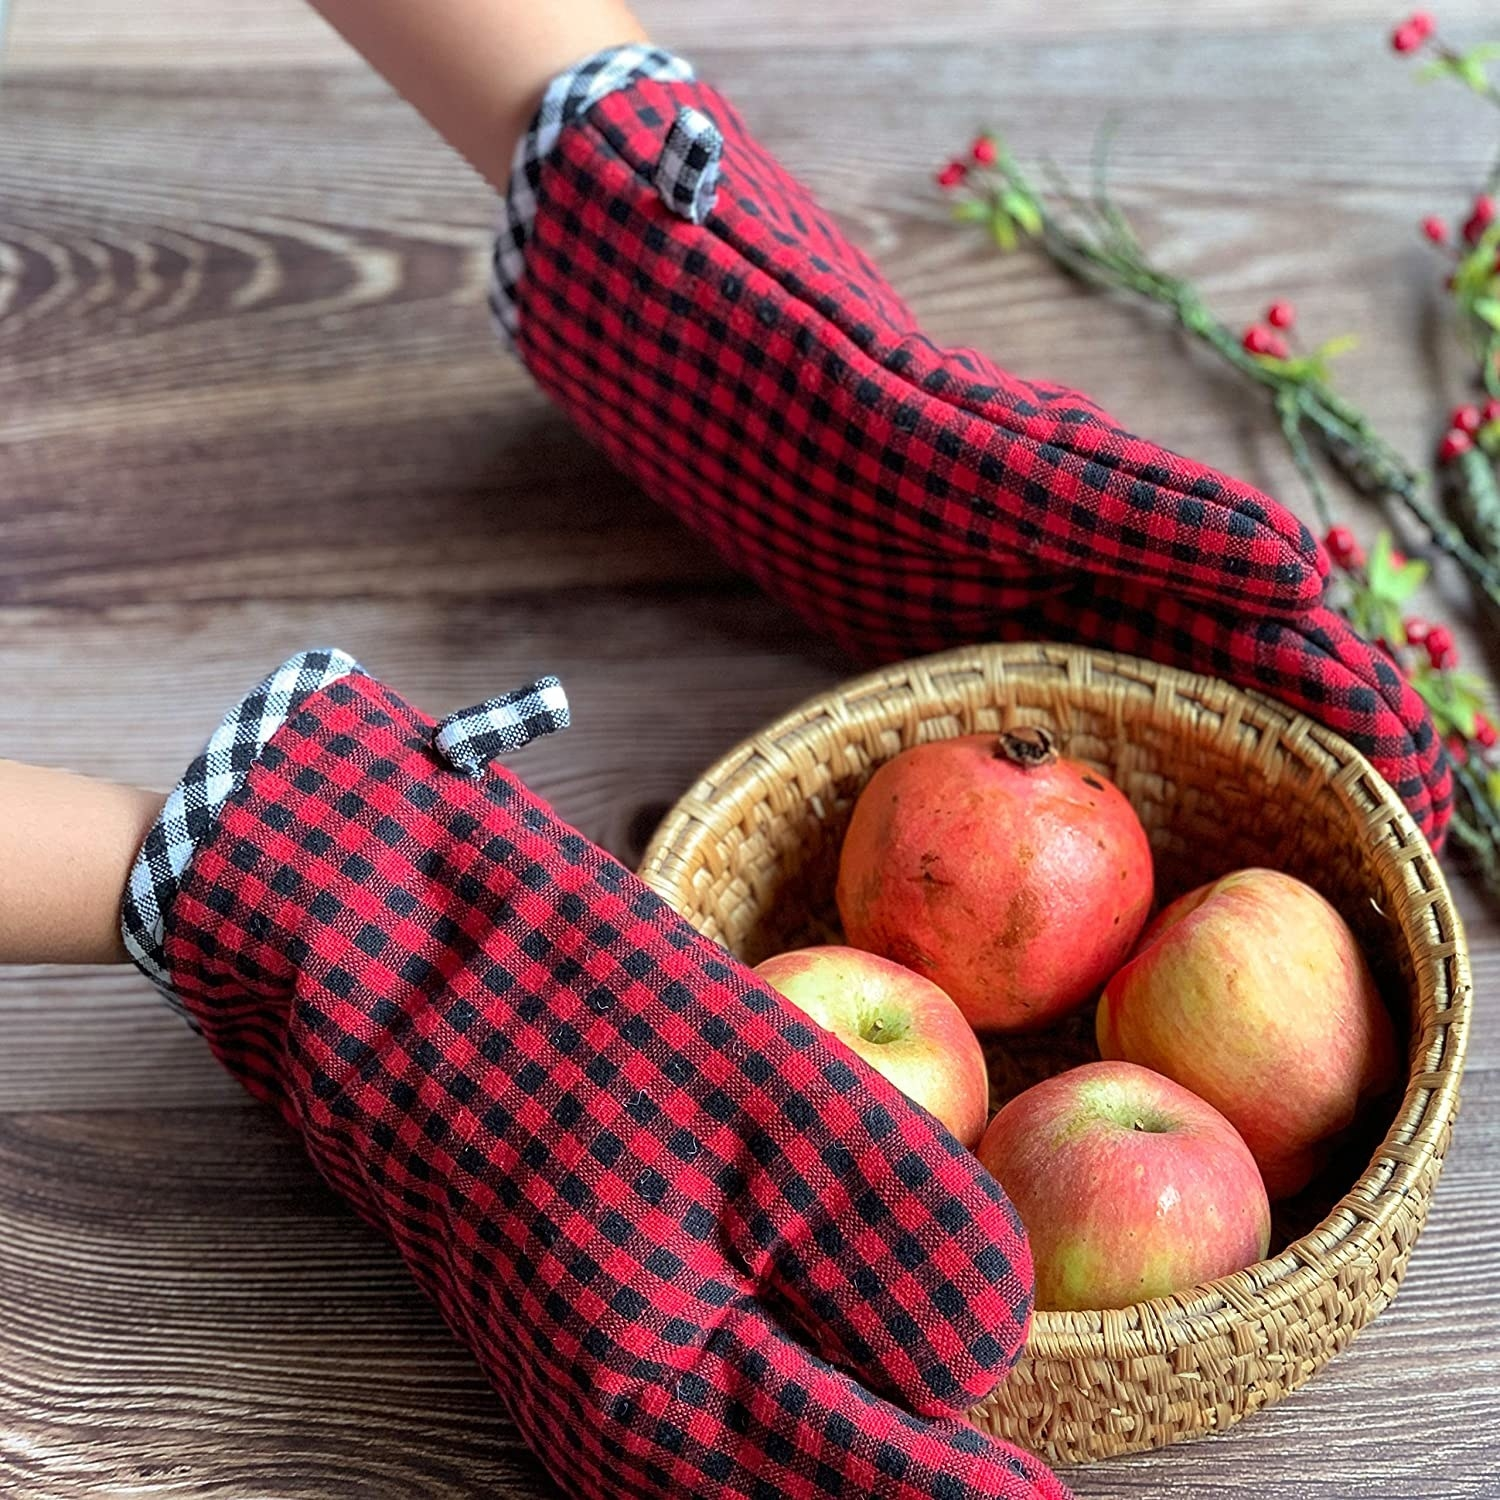 A person wearing black and red checkered mittens while holding a fruit basket